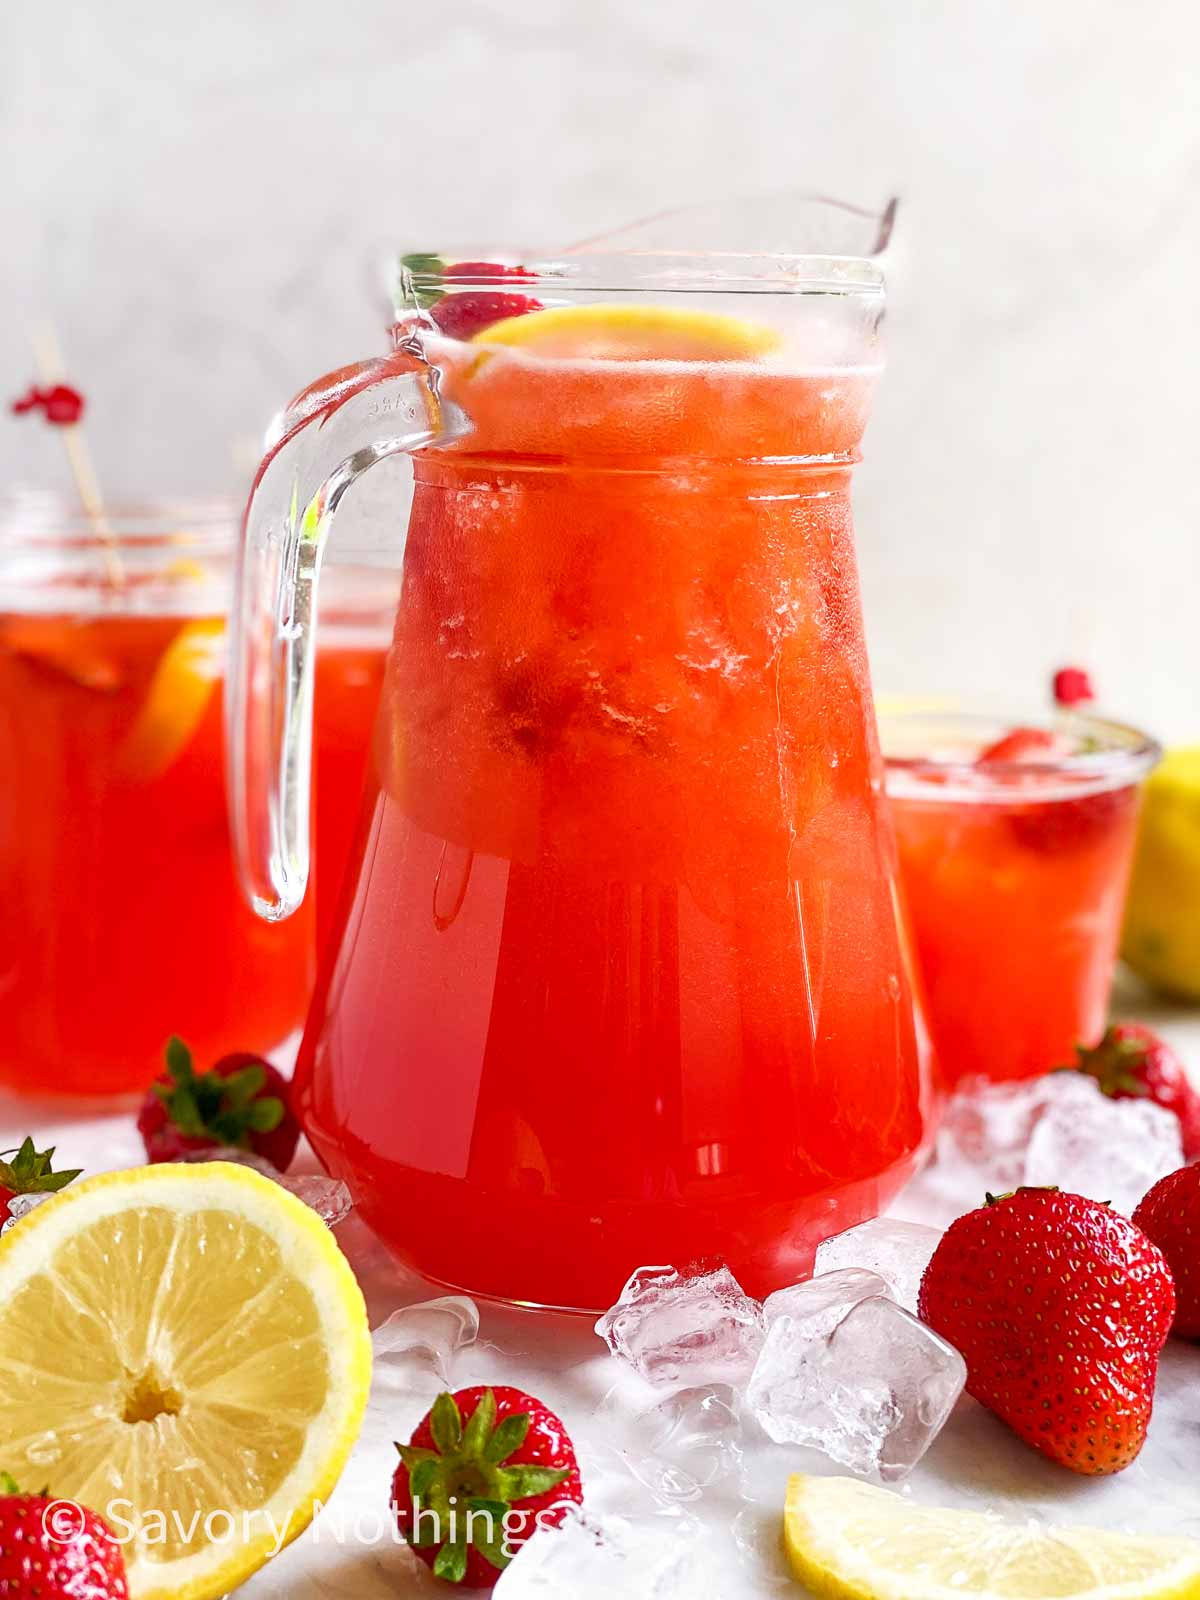 glass jug filled with strawberry lemonade surrounded by ice, strawberries, lemon and glasses full of strawberry lemonade